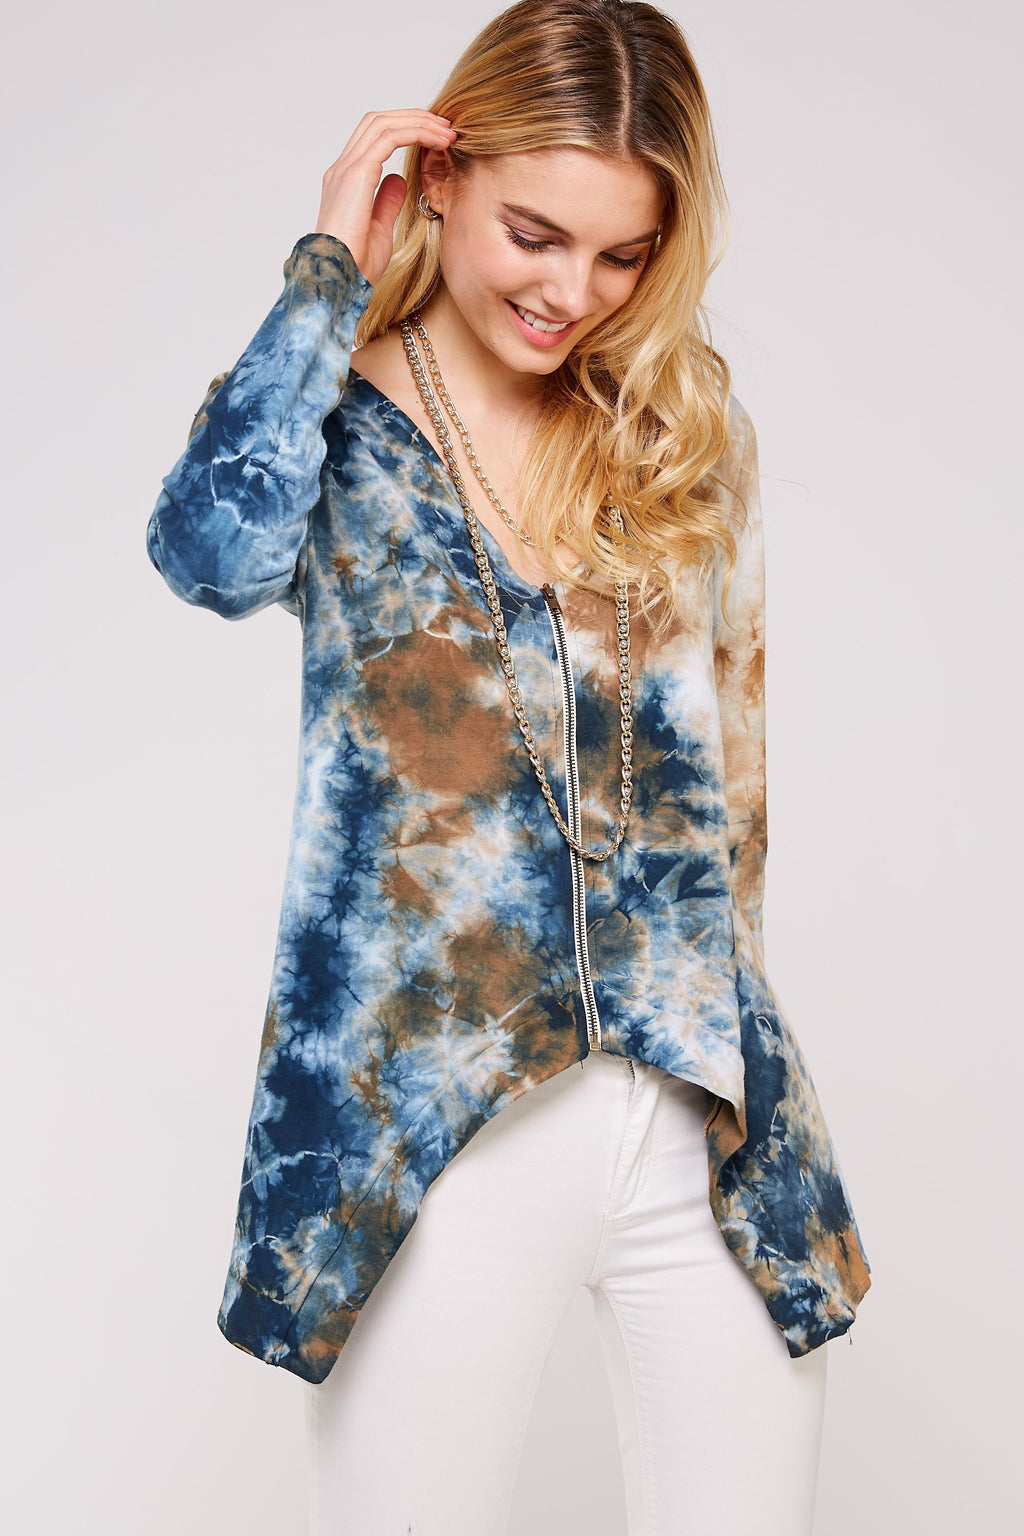 Wholesale Clothing, Online Wholesale Clothing, Women Clothing, Bohemian, Free People, tiedye, specialty wash, wholesale seller, wholesale women clothing shop, gypsy look, USA made, URBAN X APPAREL-CARDIGANS-UJF30335, fashiontrend2019